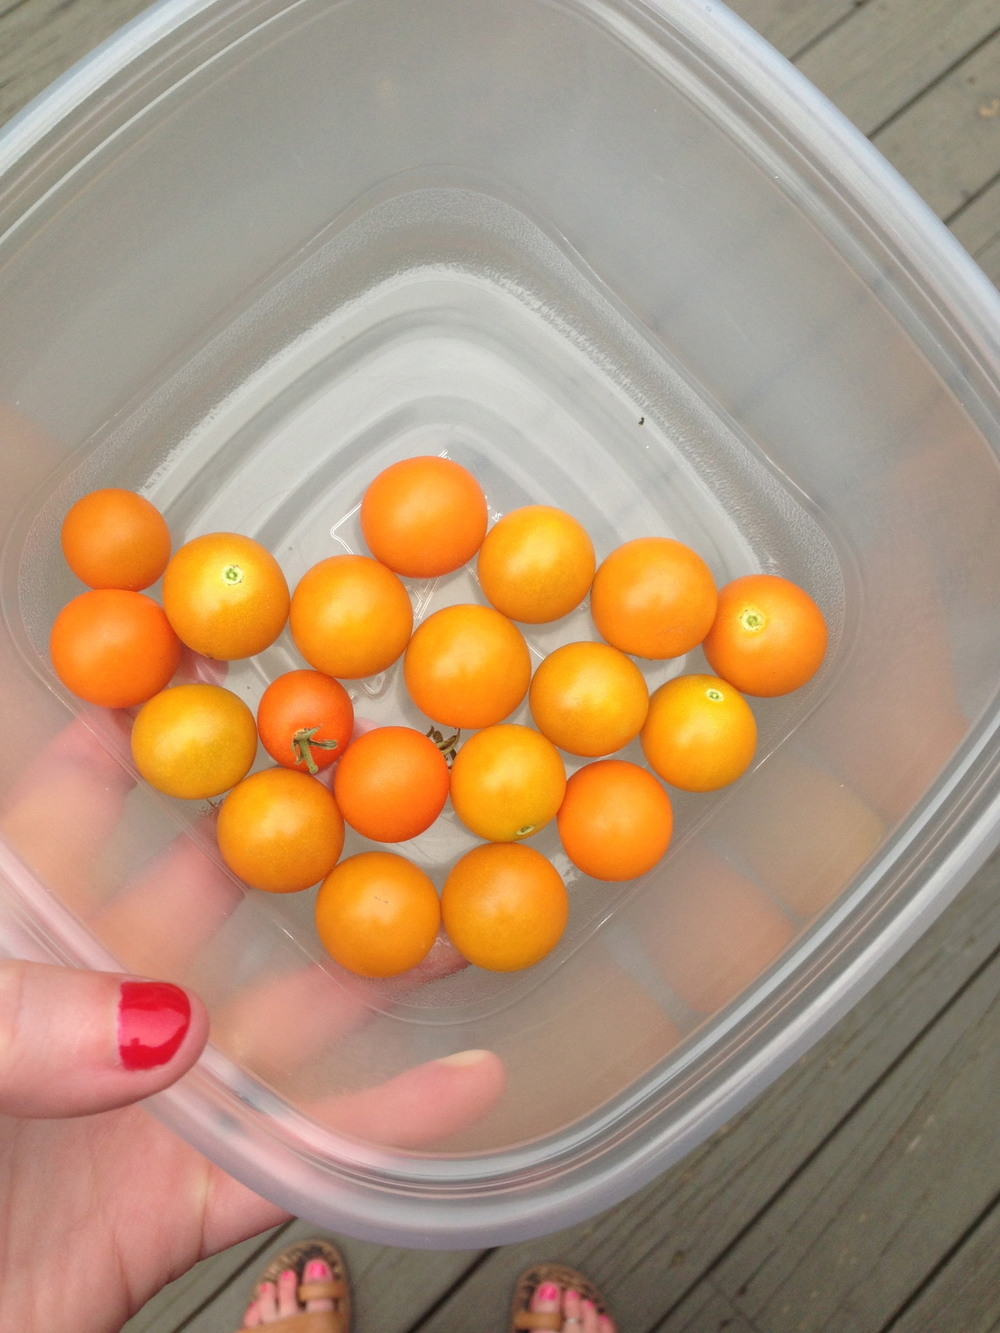 yay sungold tomatoes bowl